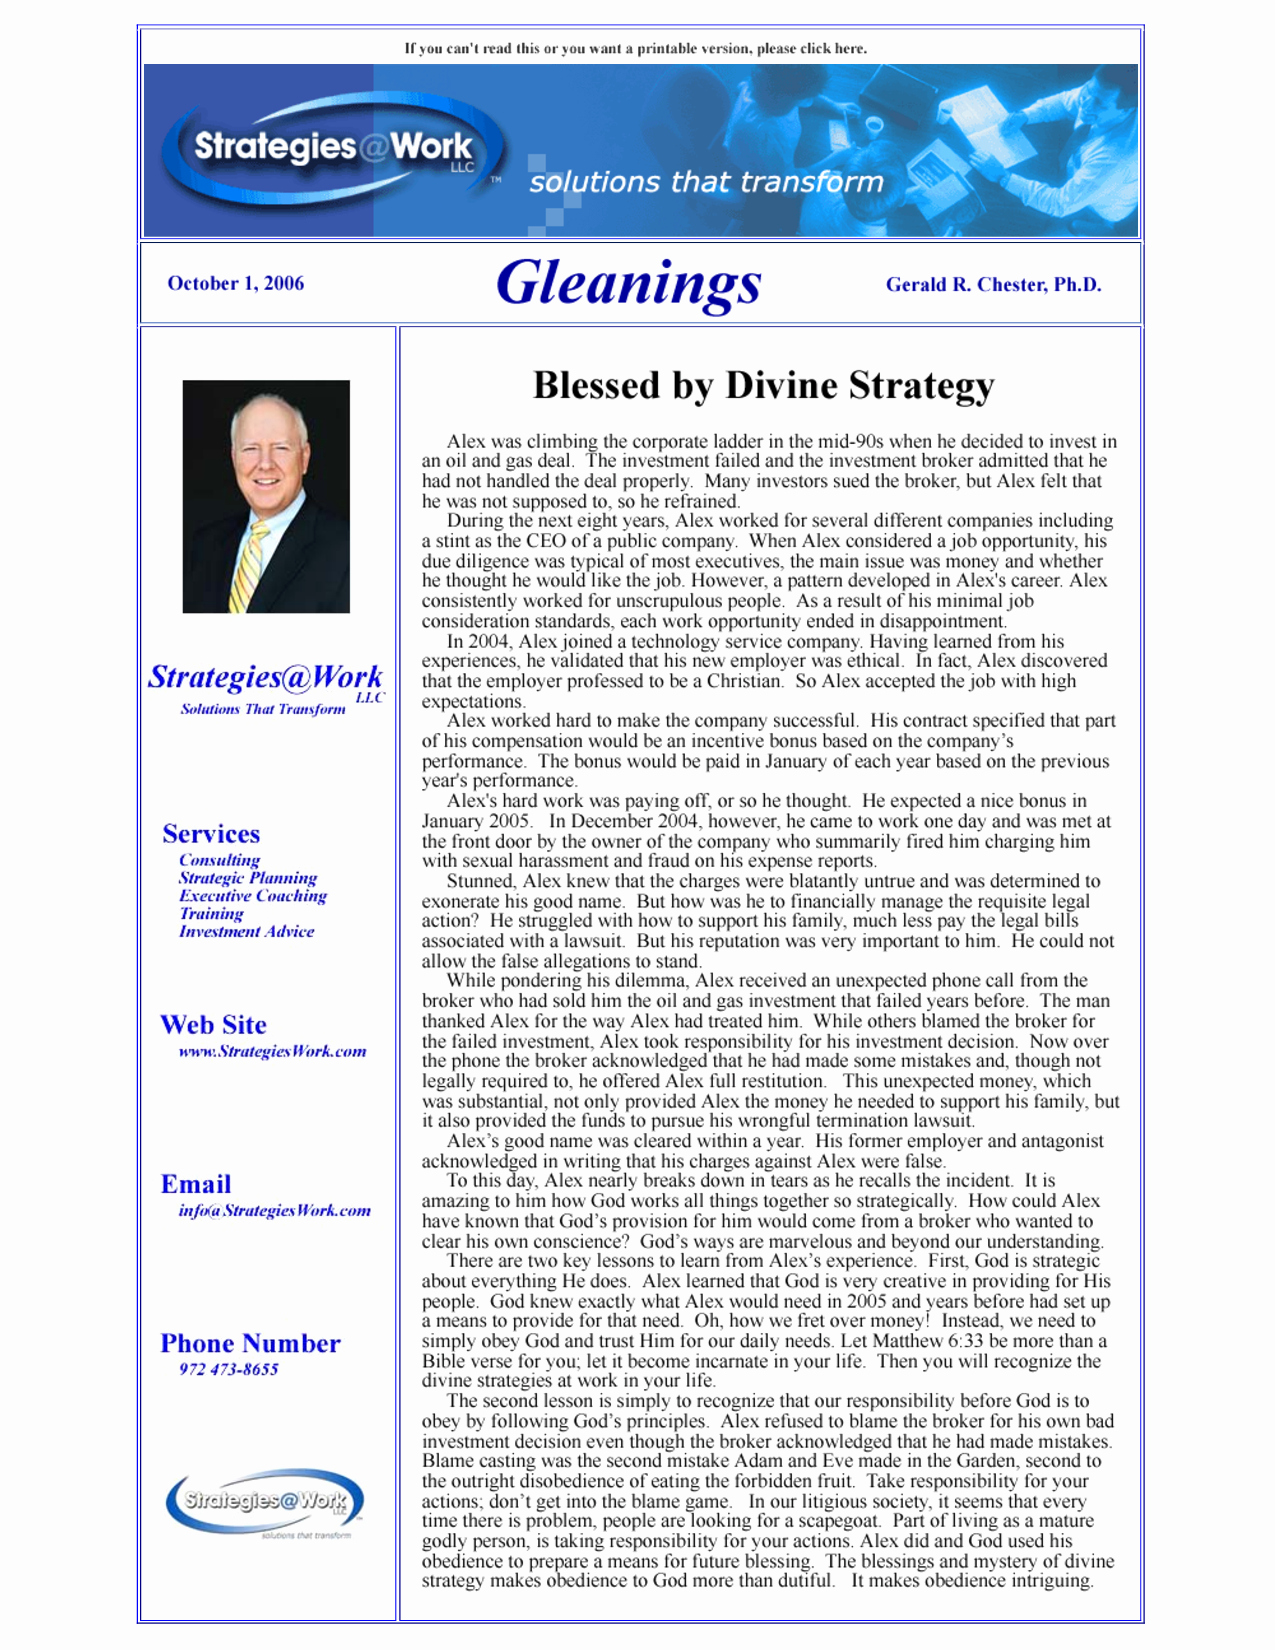 Newsletter Templates for Microsoft Word Luxury Microsoft Word Newsletter Templates